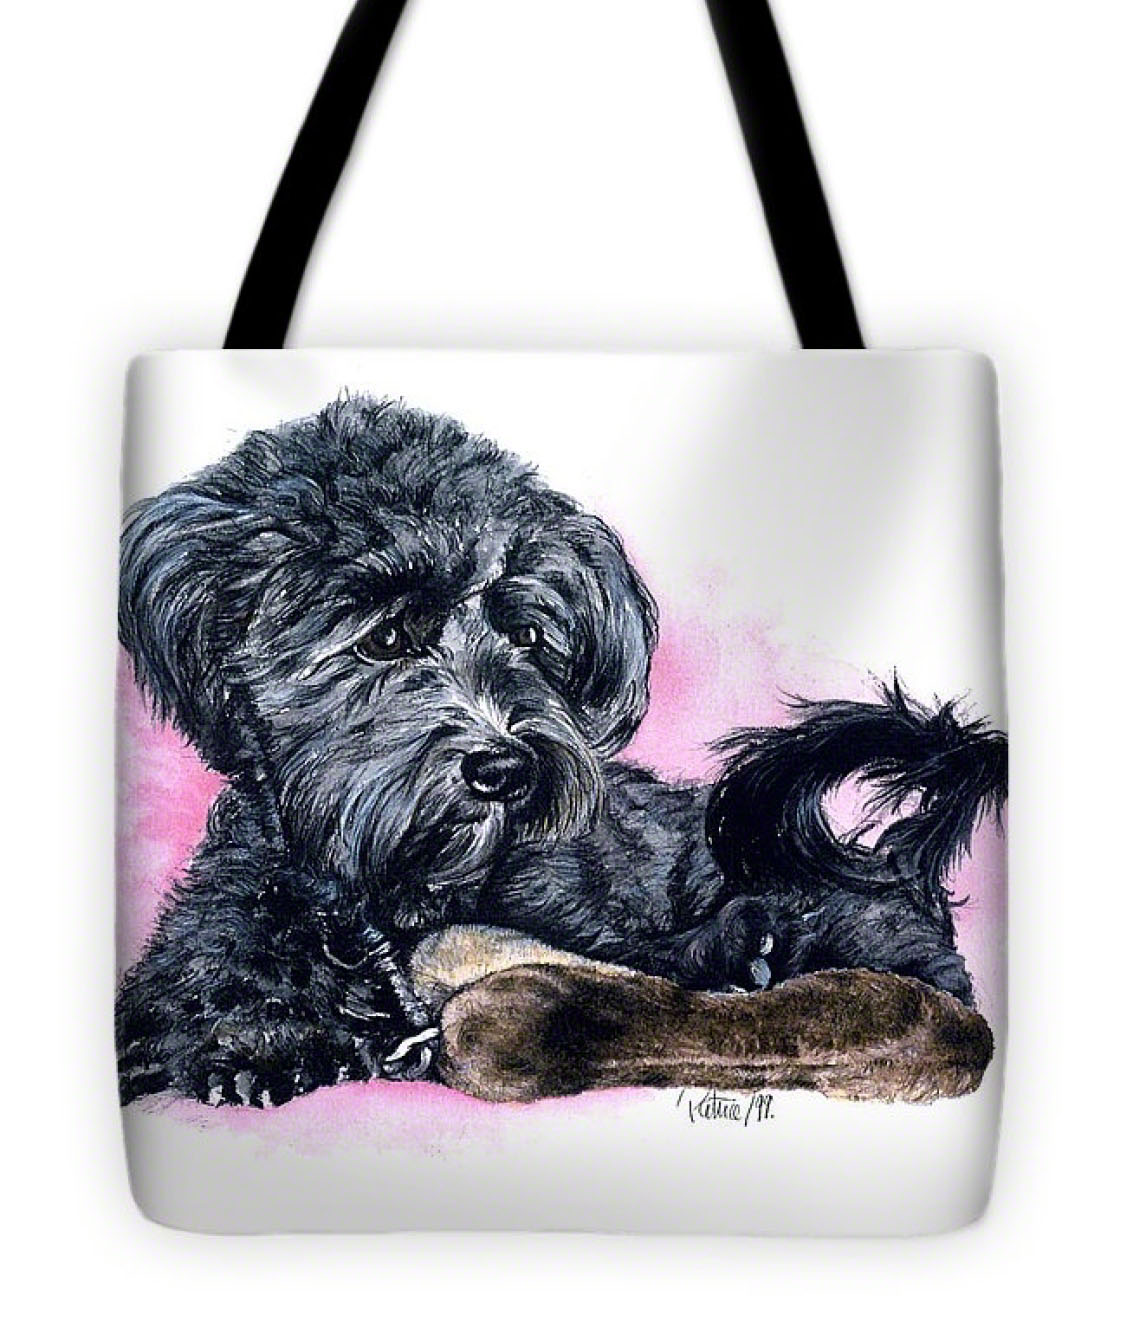 Cecile's Hero Tote-Bag - Product by Patrice